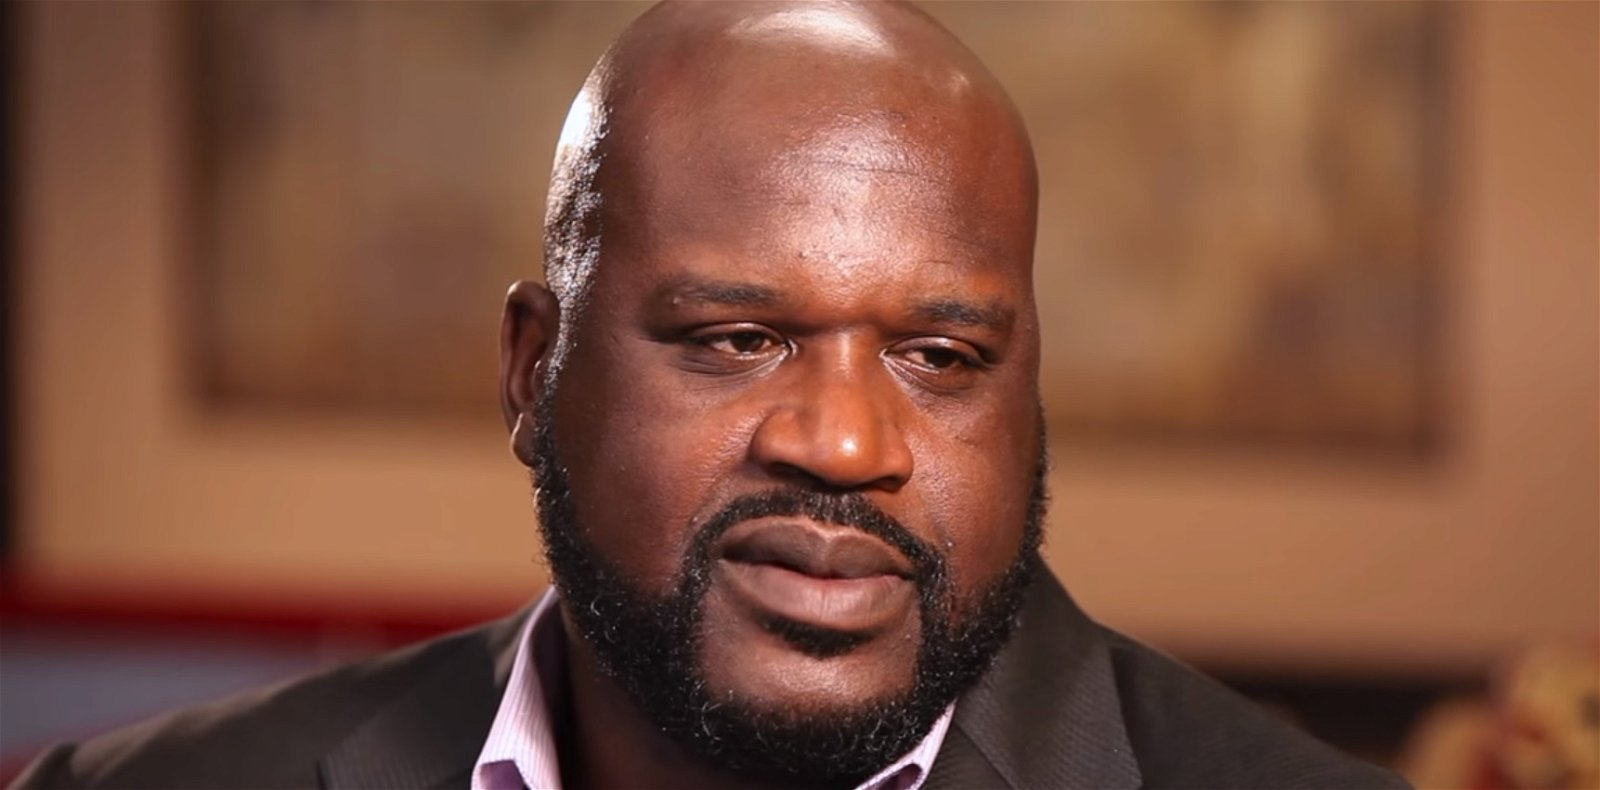 Where Did Shaq Go To College?